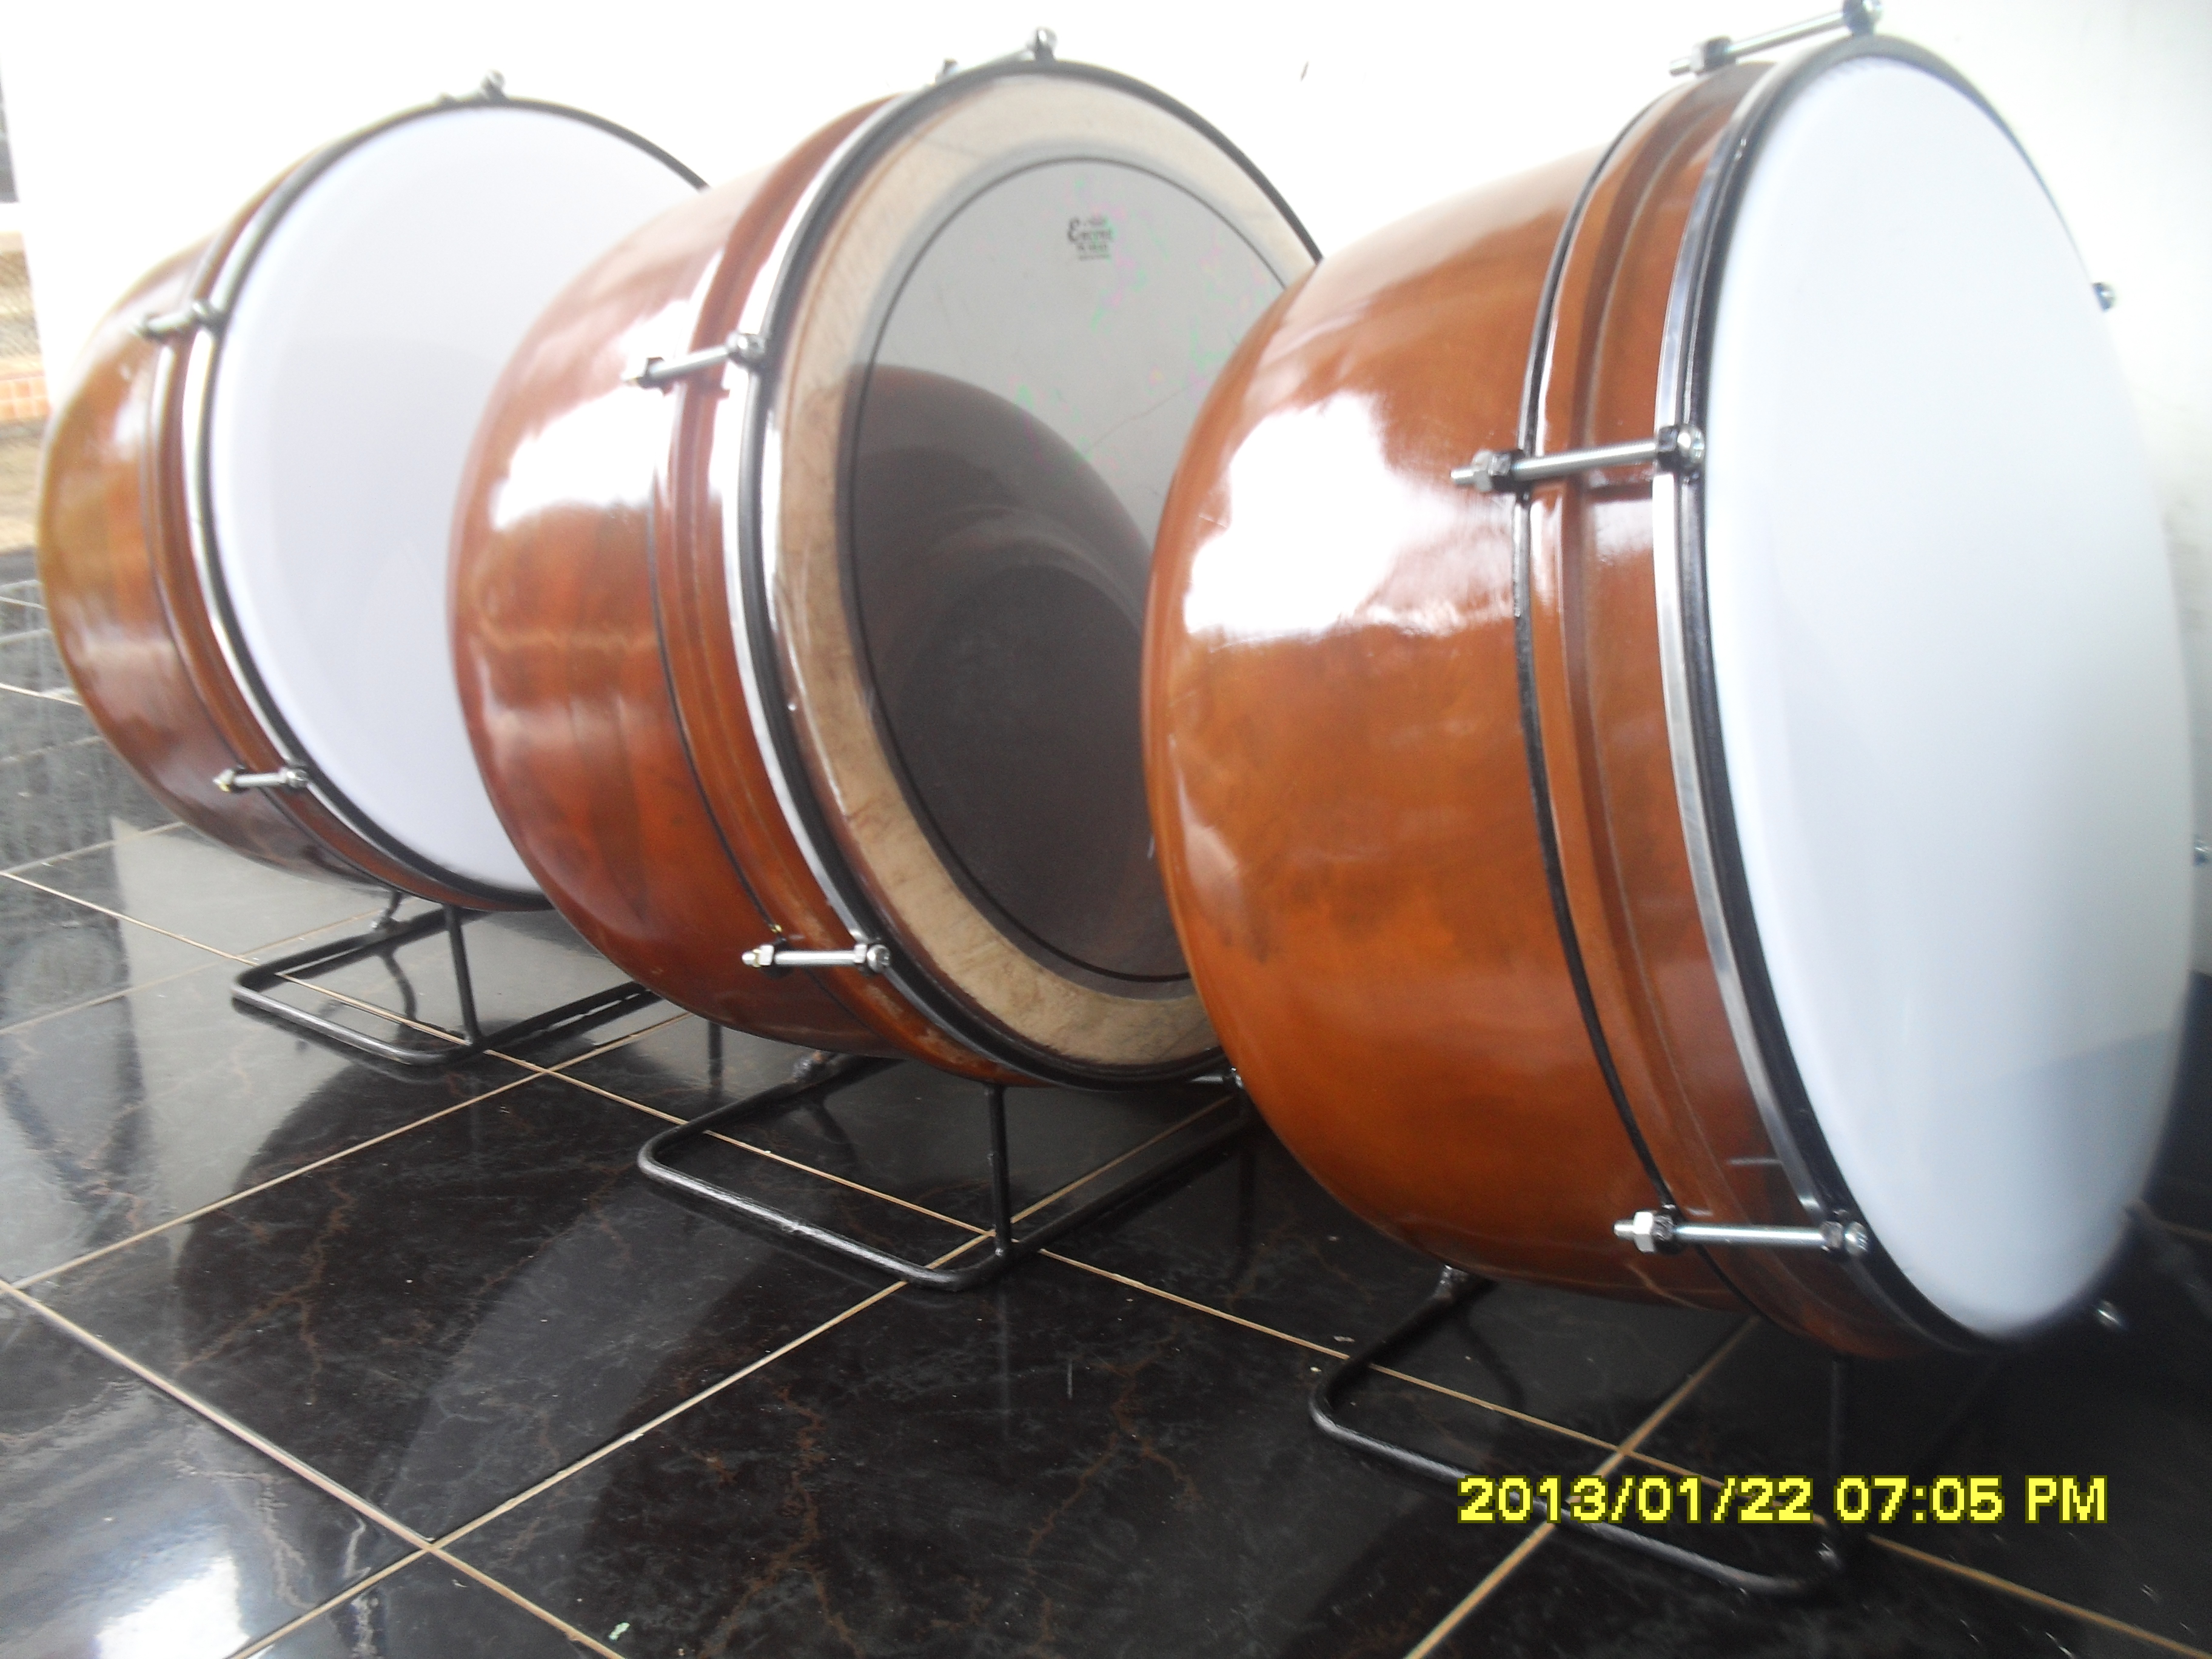 Jual bass stel – 08563581146 Pin BB 7F866403 Rofi